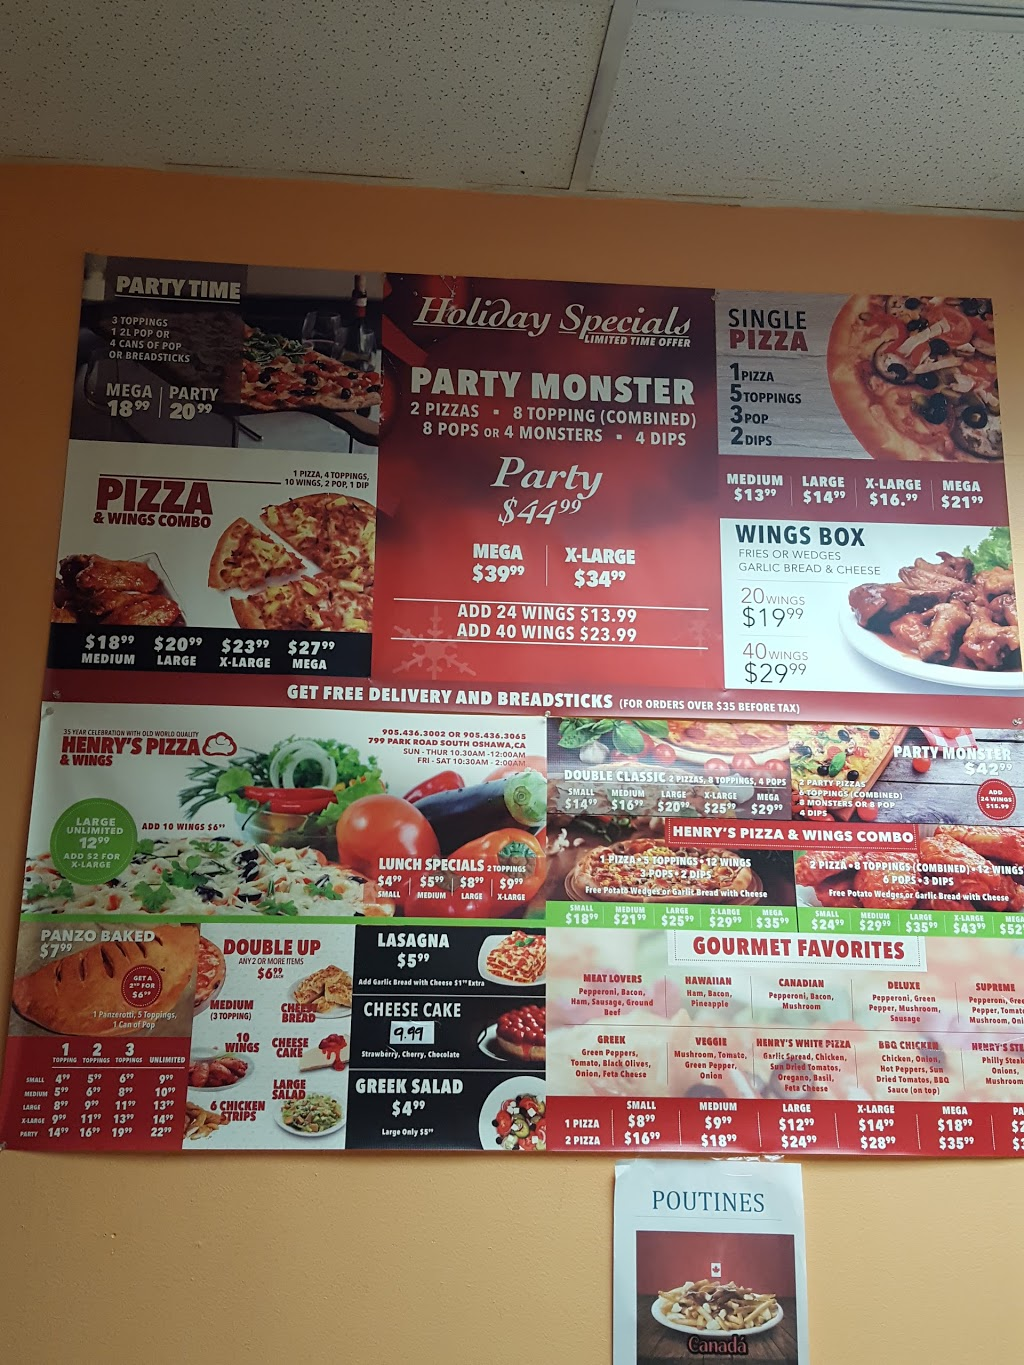 Henrys Pizza & Wings   meal delivery   799 Park Rd S, Oshawa, ON L1J 4K1, Canada   9054363002 OR +1 905-436-3002